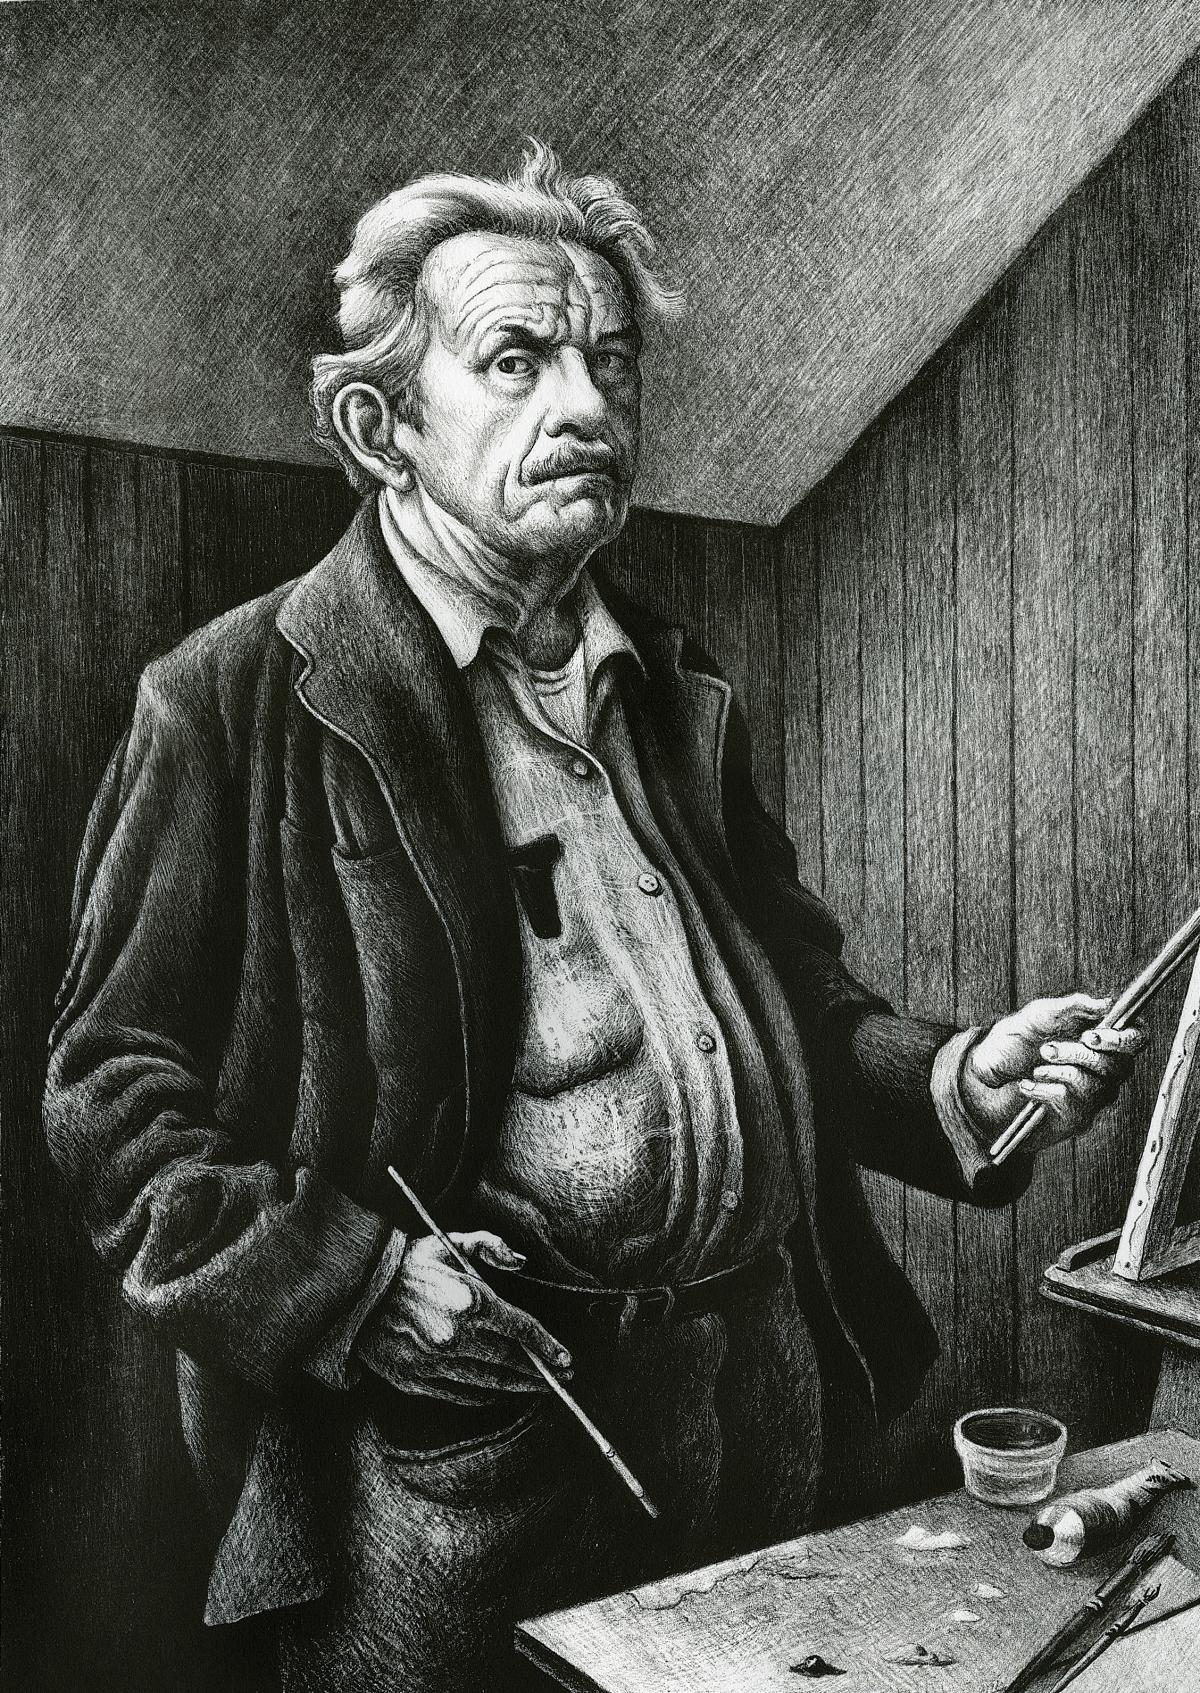 black and white painting of an older man at an easel